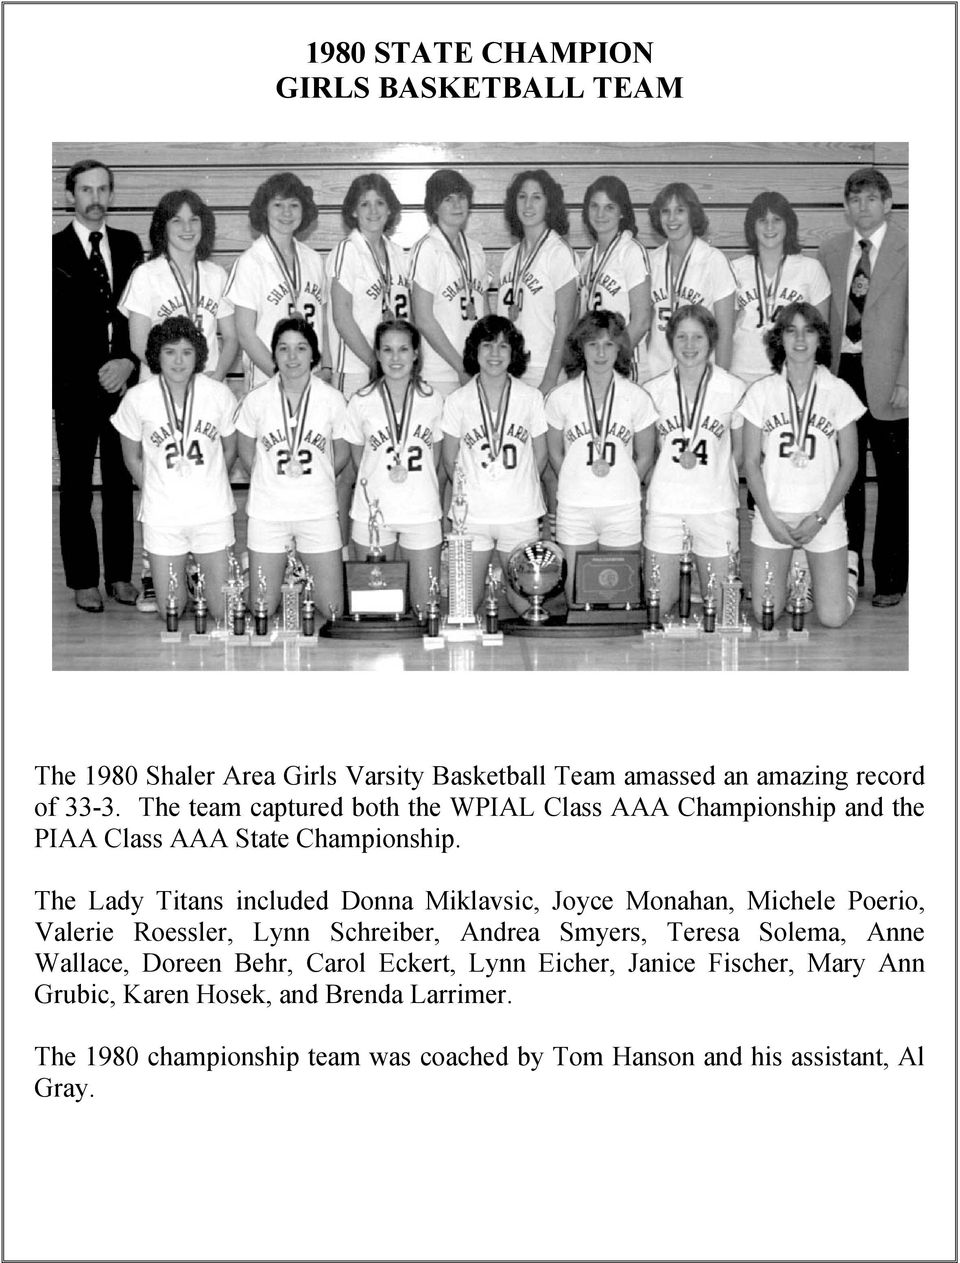 The Lady Titans included Donna Miklavsic, Joyce Monahan, Michele Poerio, Valerie Roessler, Lynn Schreiber, Andrea Smyers, Teresa Solema, Anne